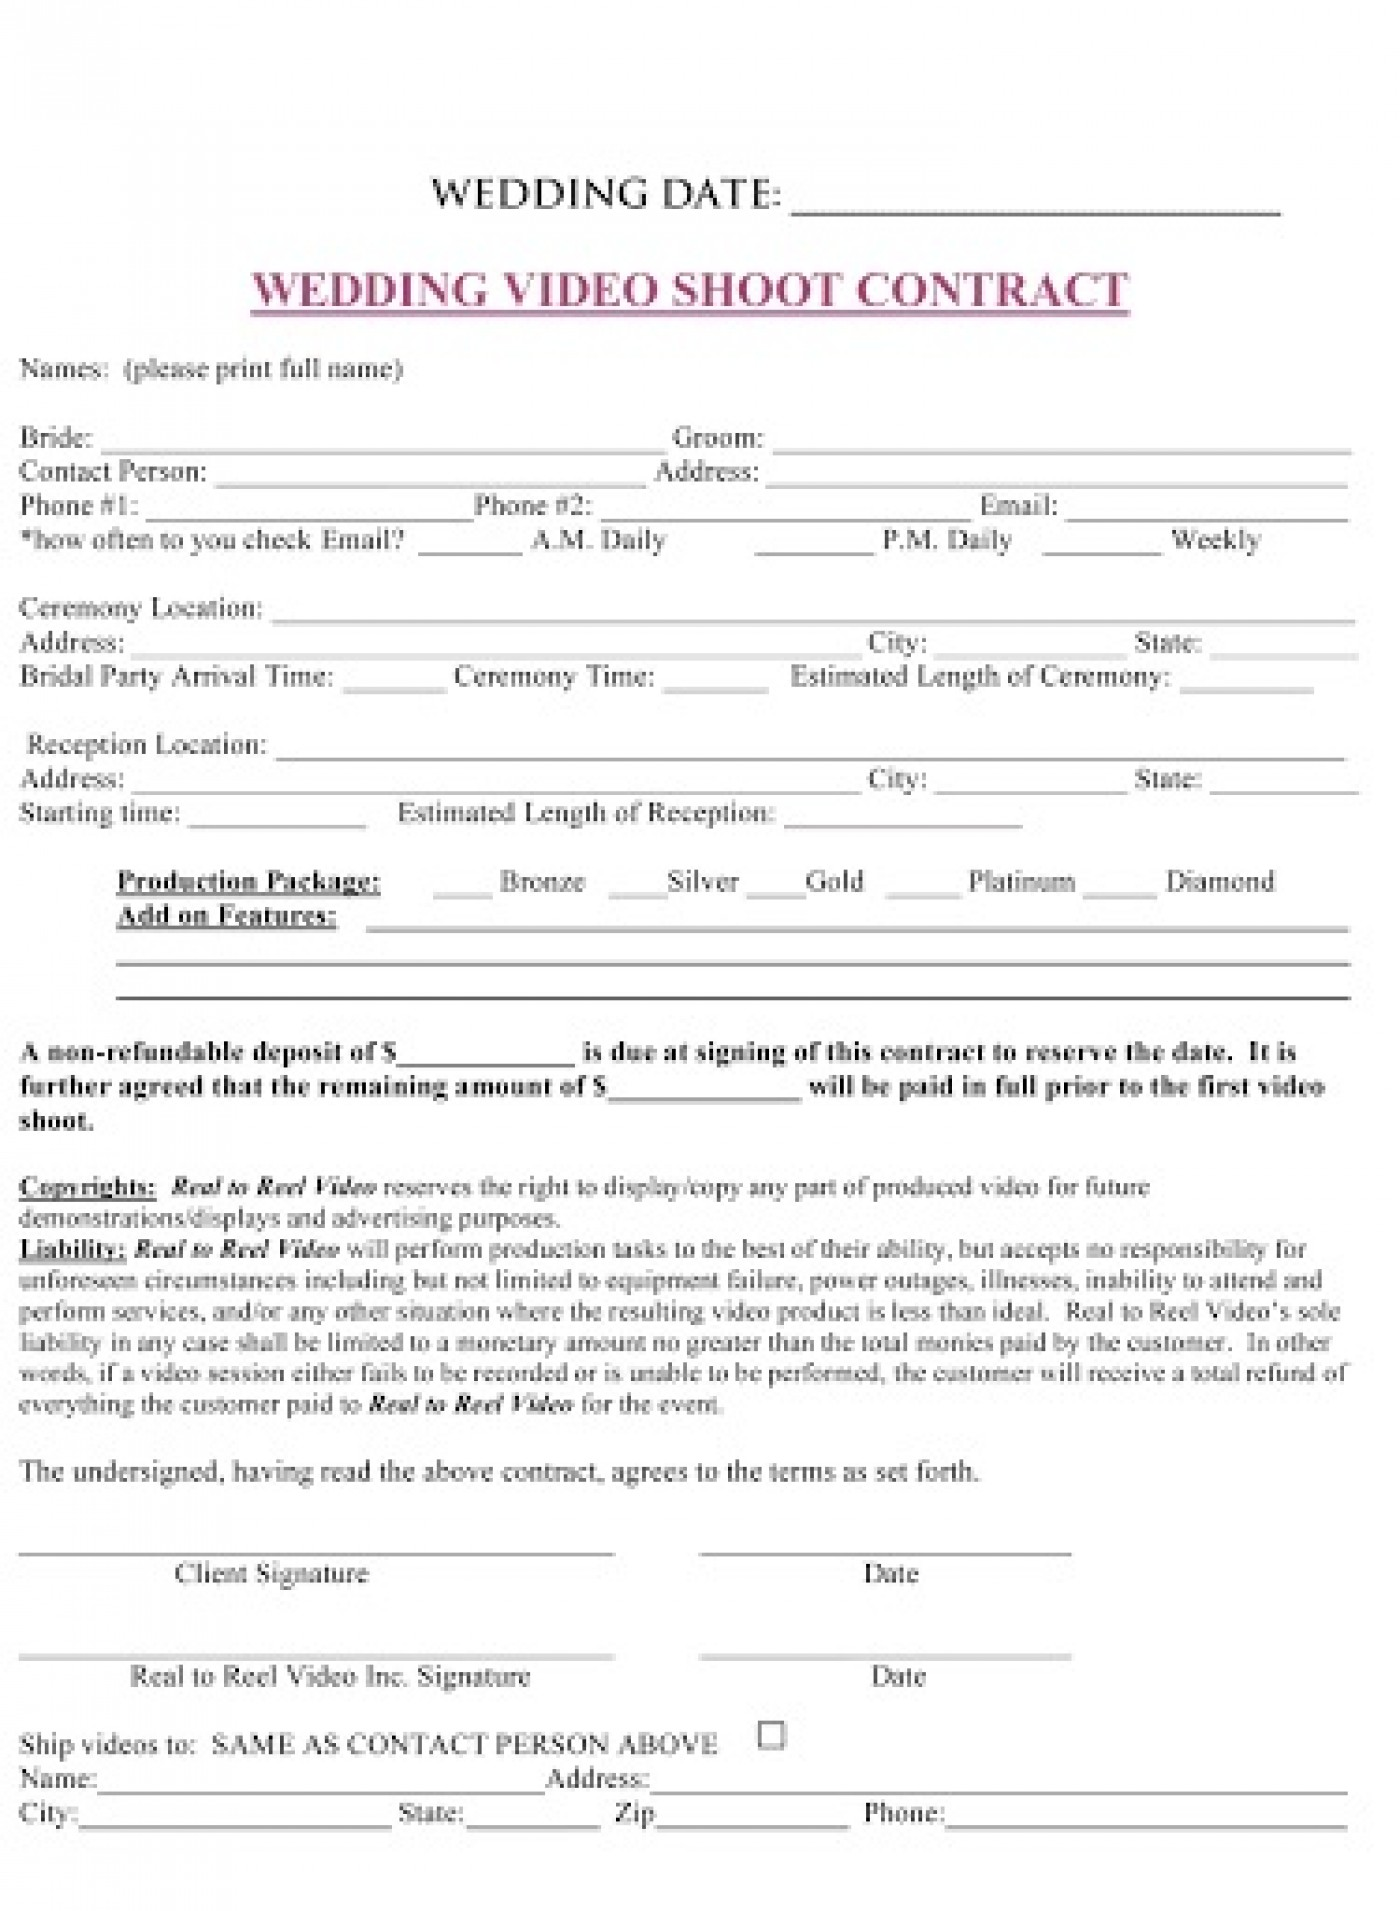 009 Sensational Wedding Videography Contract Template Concept  Pdf Example Word1400